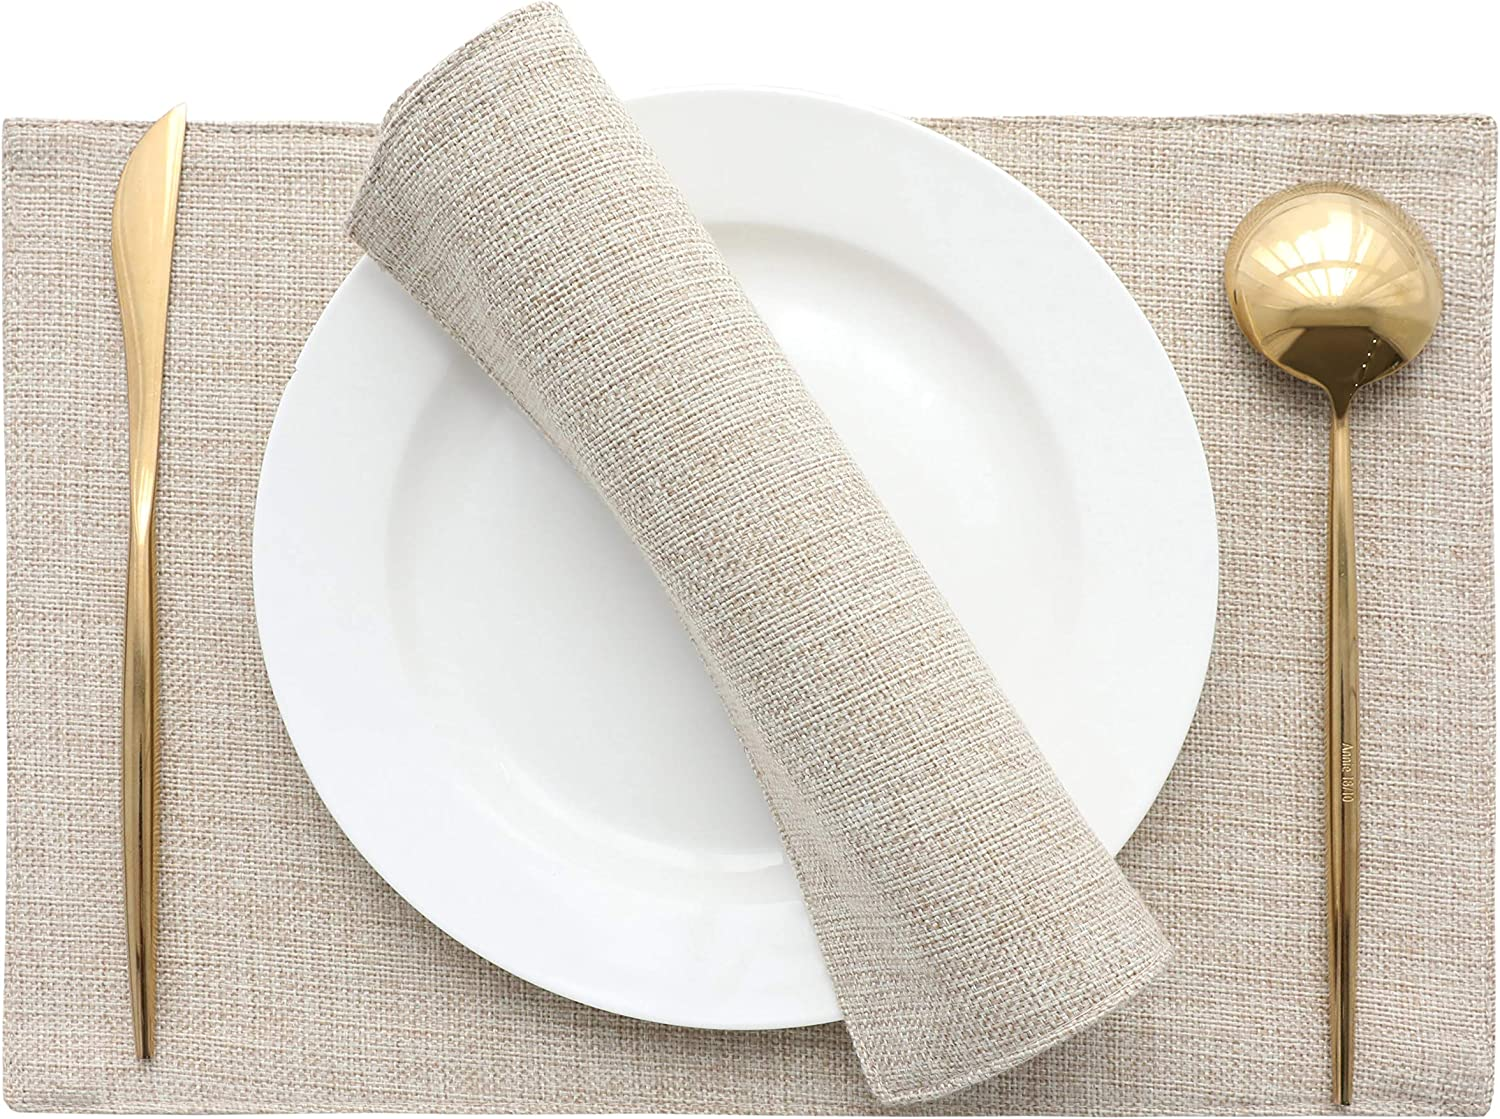 Home Brilliant Set of 4 Placemats Heat Resistant Dining Table Place Mats Kitchen Table Mats, Light Linen: Home & Kitchen